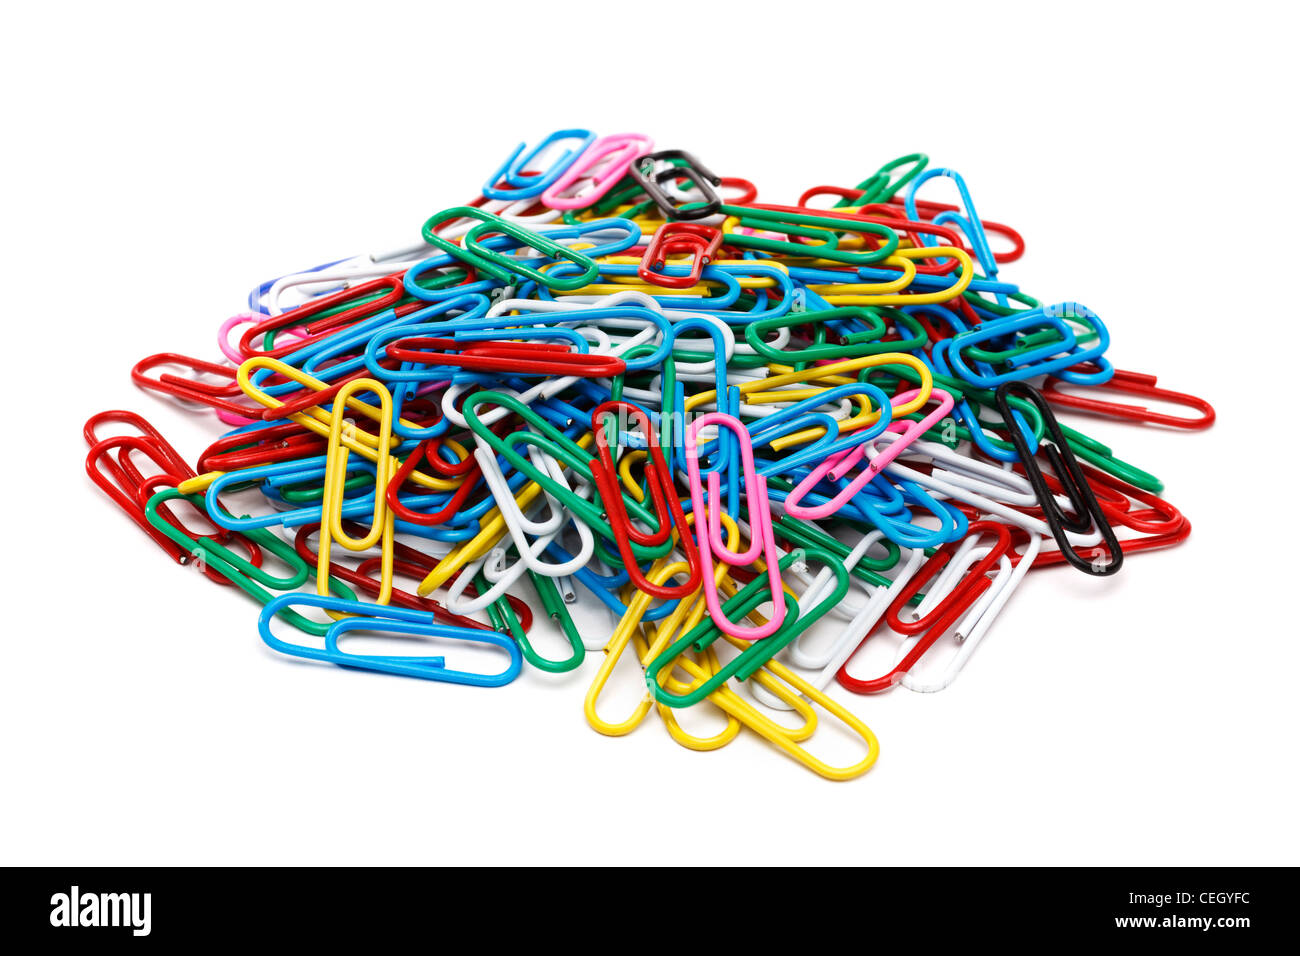 pile of paper clips on white background stock photo: 43398752 - alamy